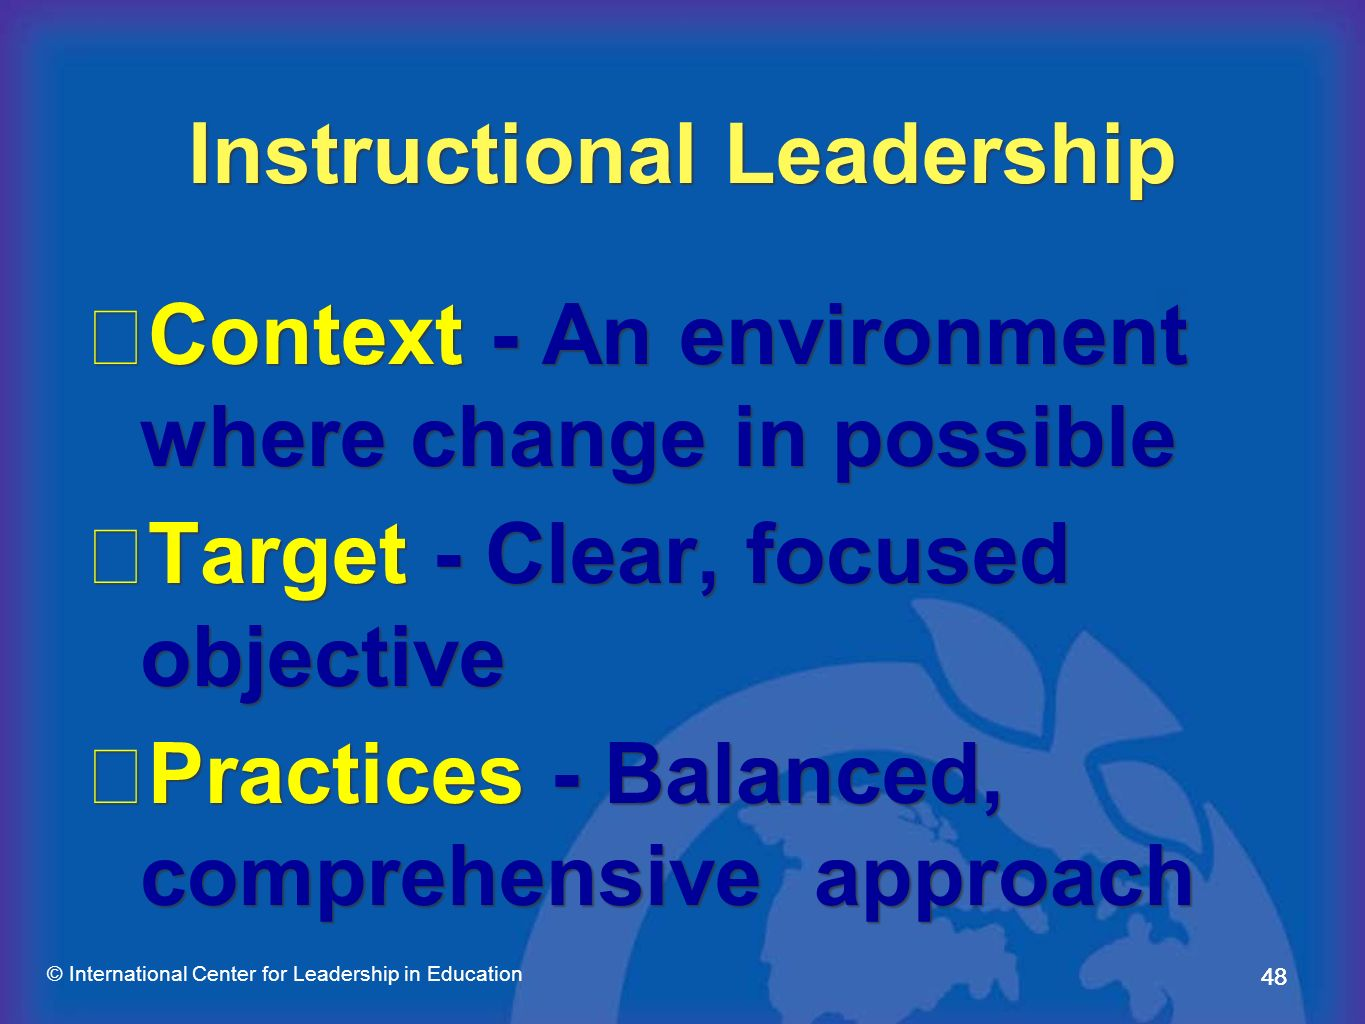 48 © International Center for Leadership in Education Context - An environment where change in possible Target - Clear, focused objective Practices -